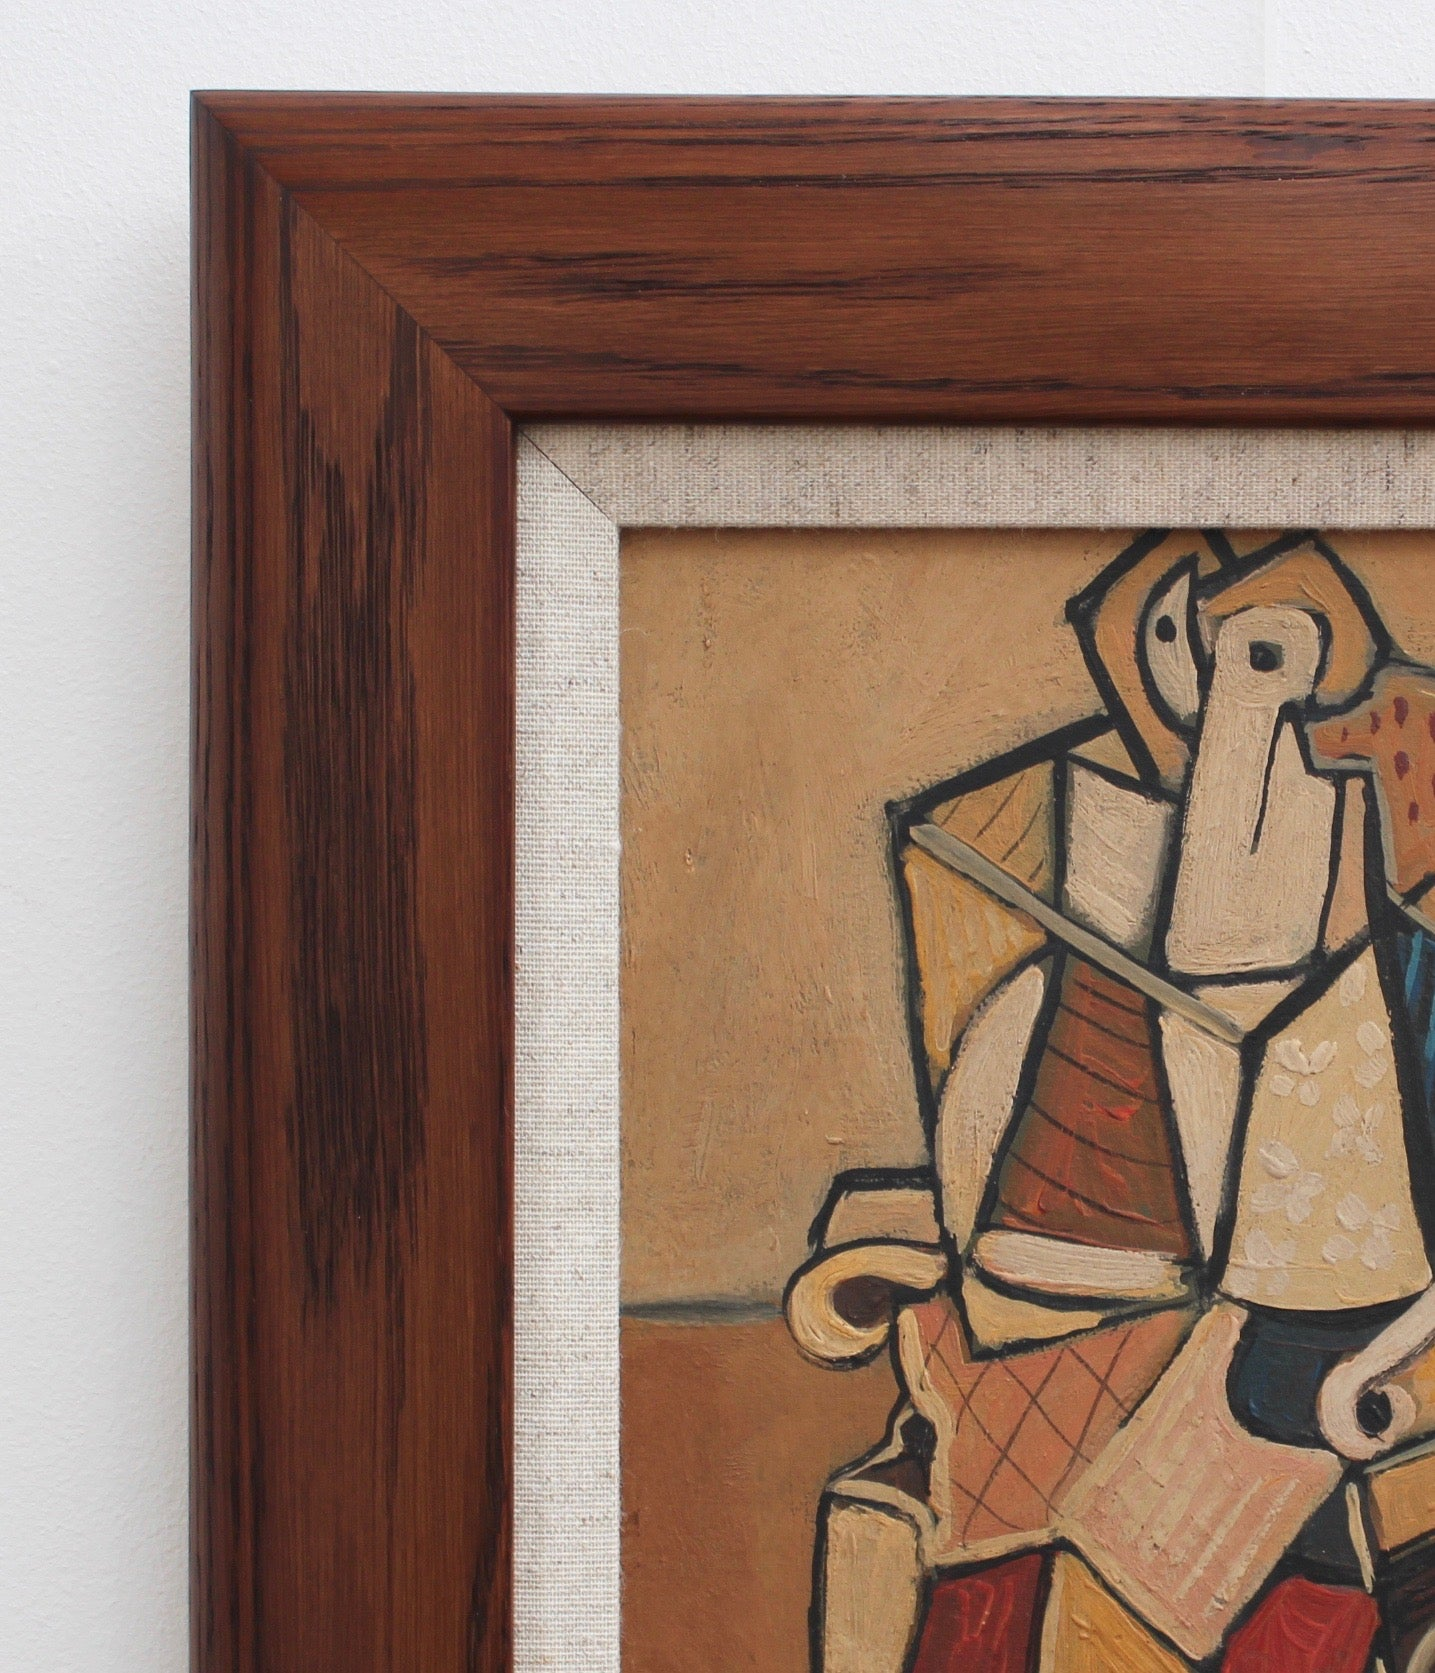 'Seated Abstract Figure' by J.G. (circa 1940s - 1960s)